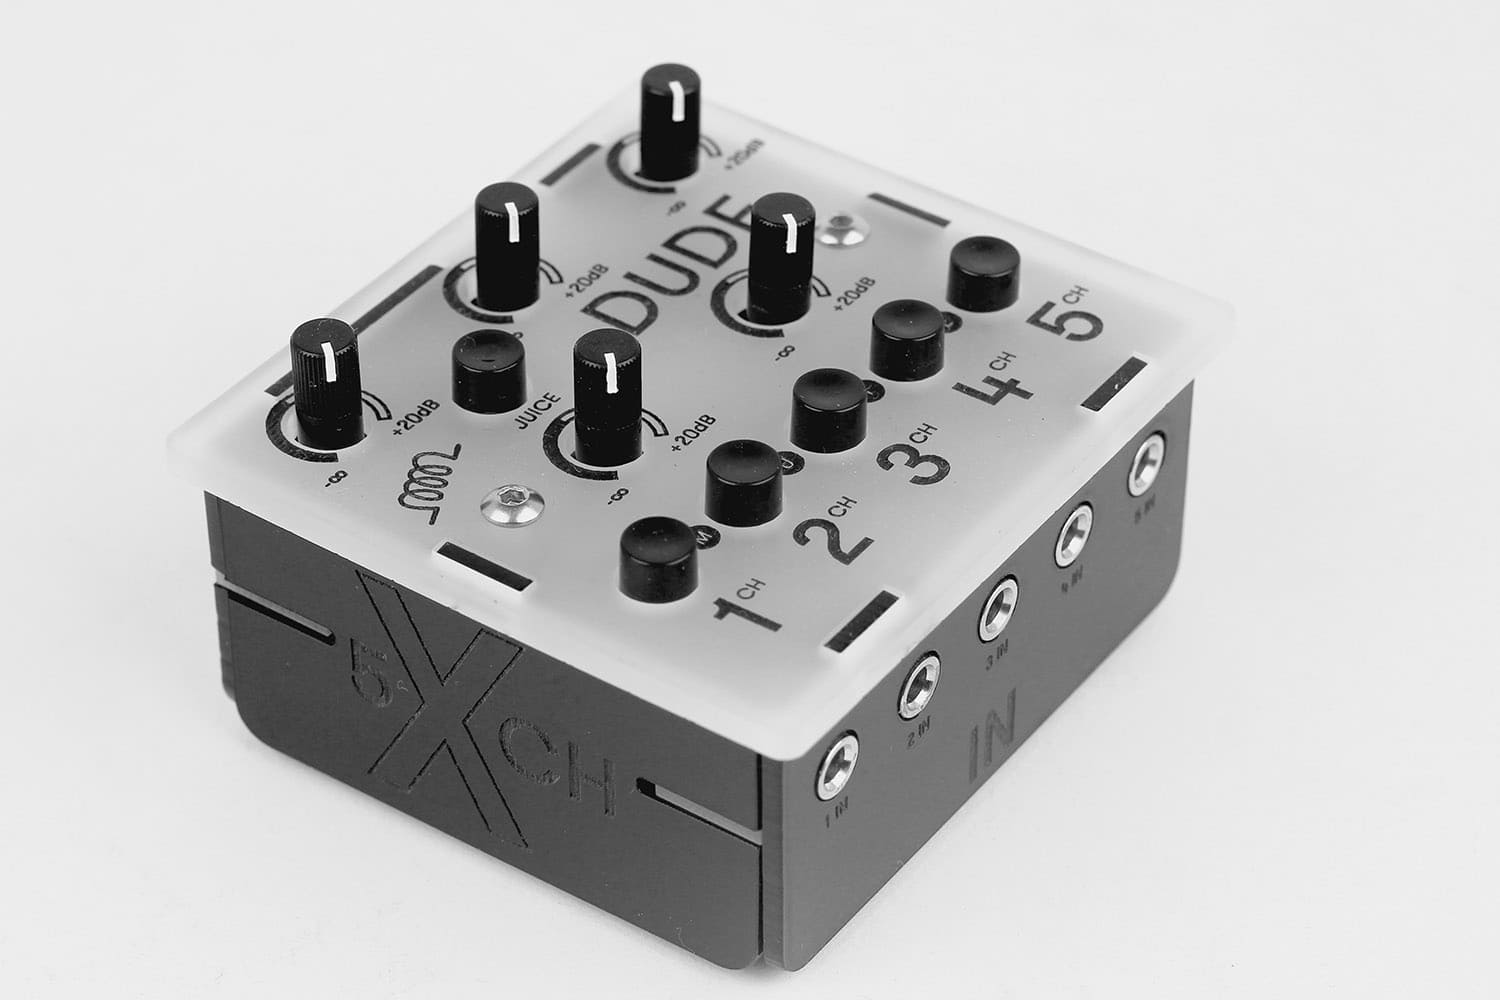 bastl 39 s dude is a 75 mixer in the space of four aa batteries cdm create digital music. Black Bedroom Furniture Sets. Home Design Ideas